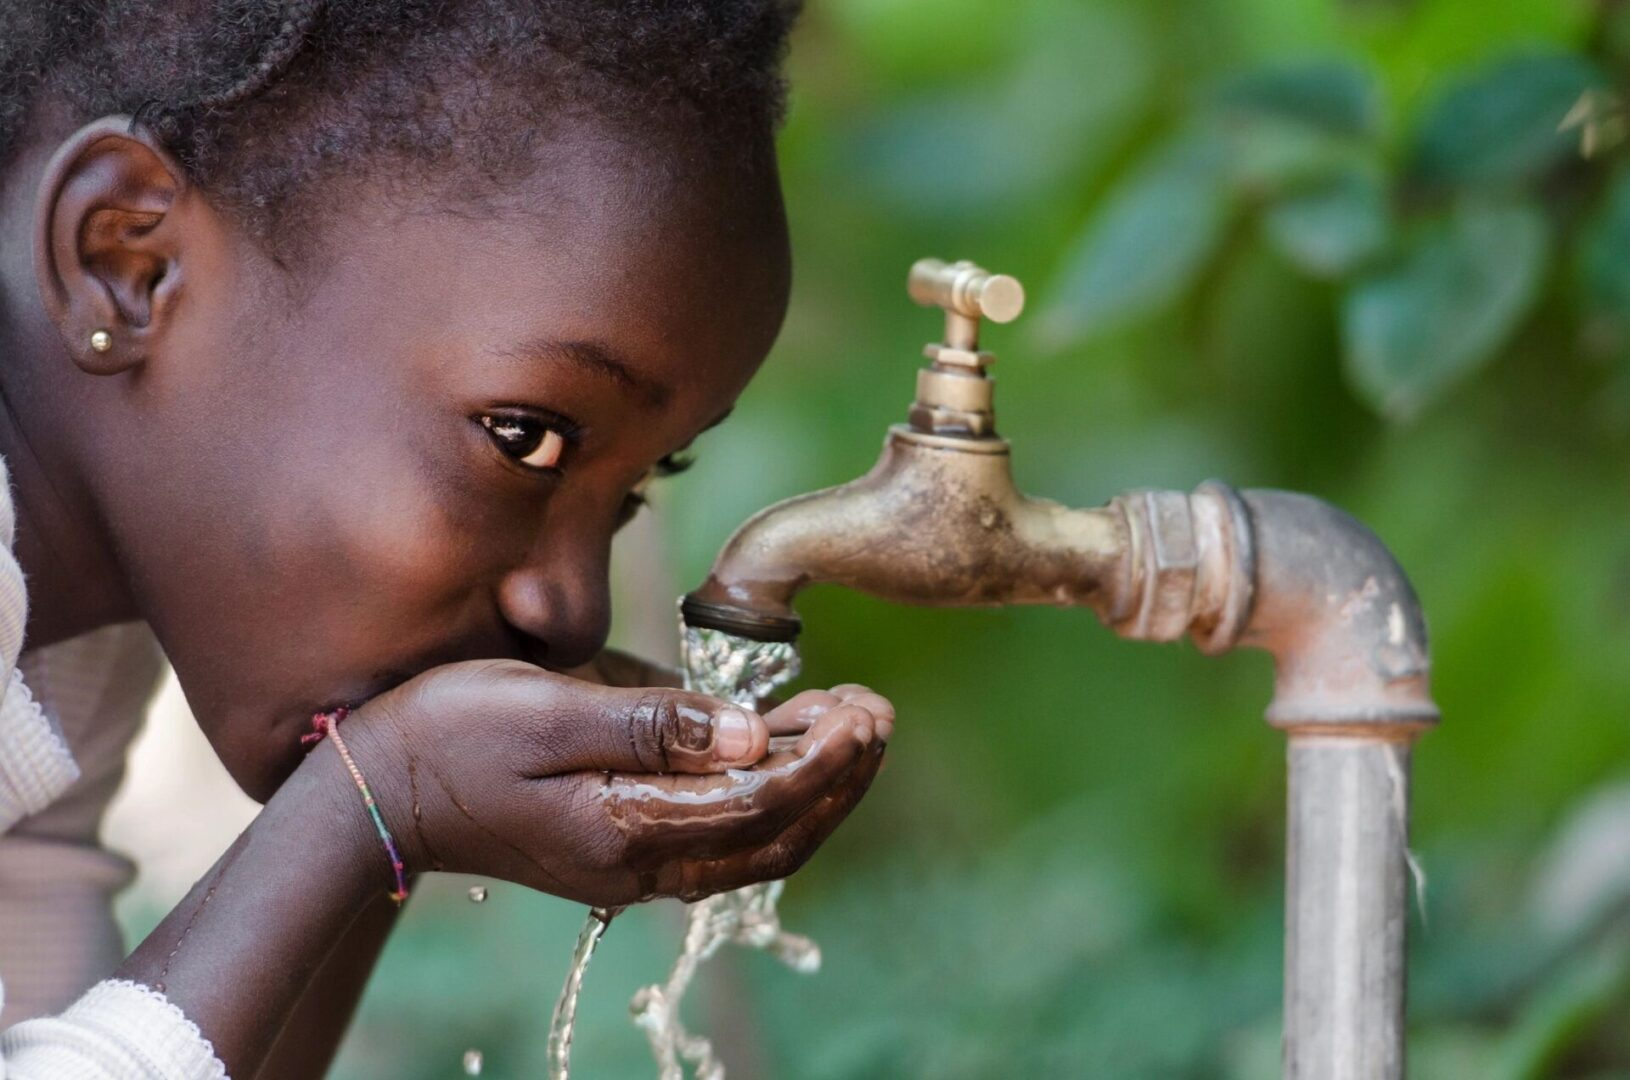 Girl Drinking Water in the Faucet